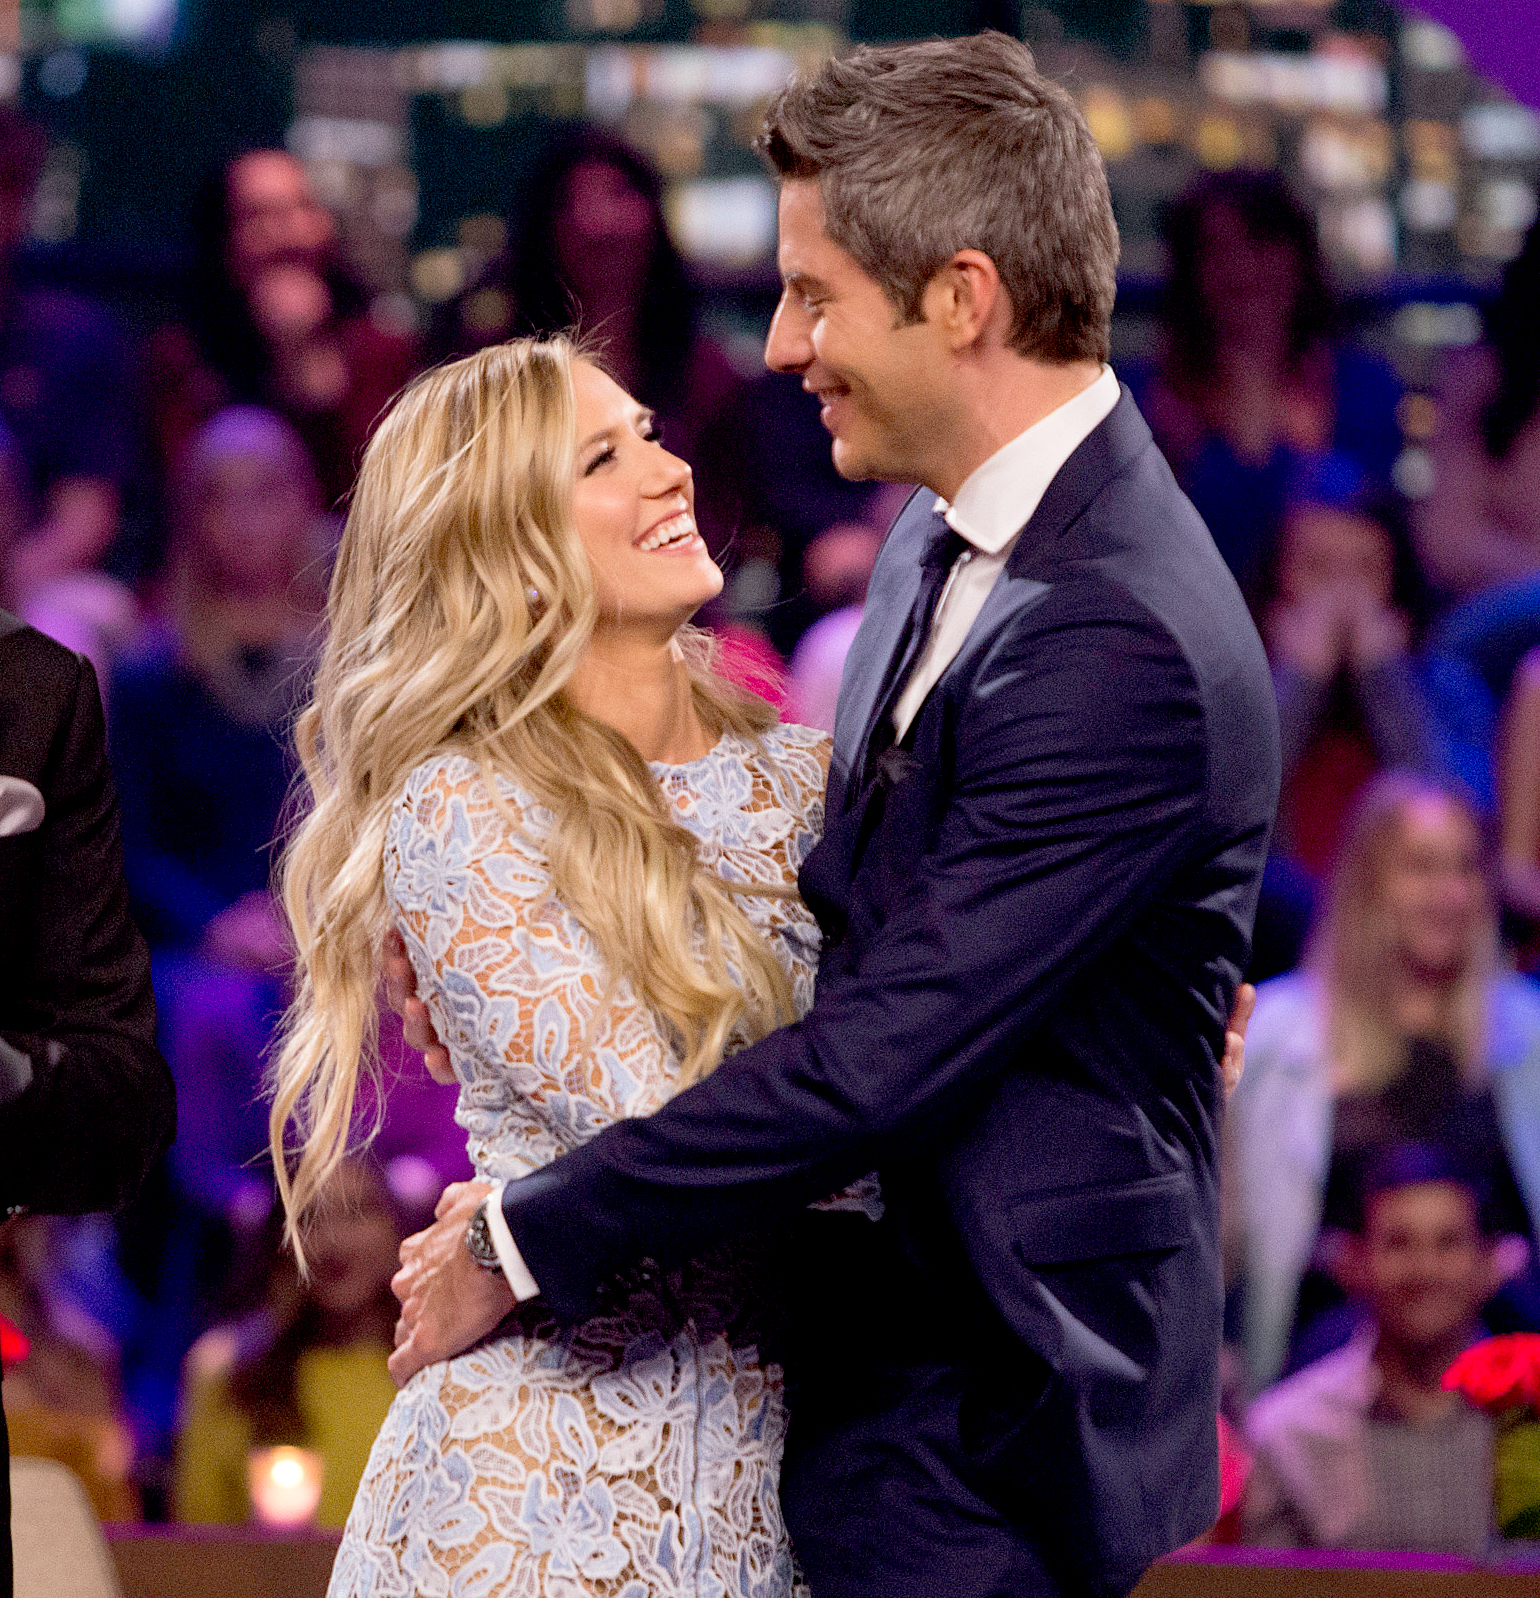 Arie-Luyendyk-Jr. -Lauren-Burnham-quotes - The professional driver expressed his feelings for the volunteer EMT to the world when he got down on one knee on the season 22 finale of ABC hit.